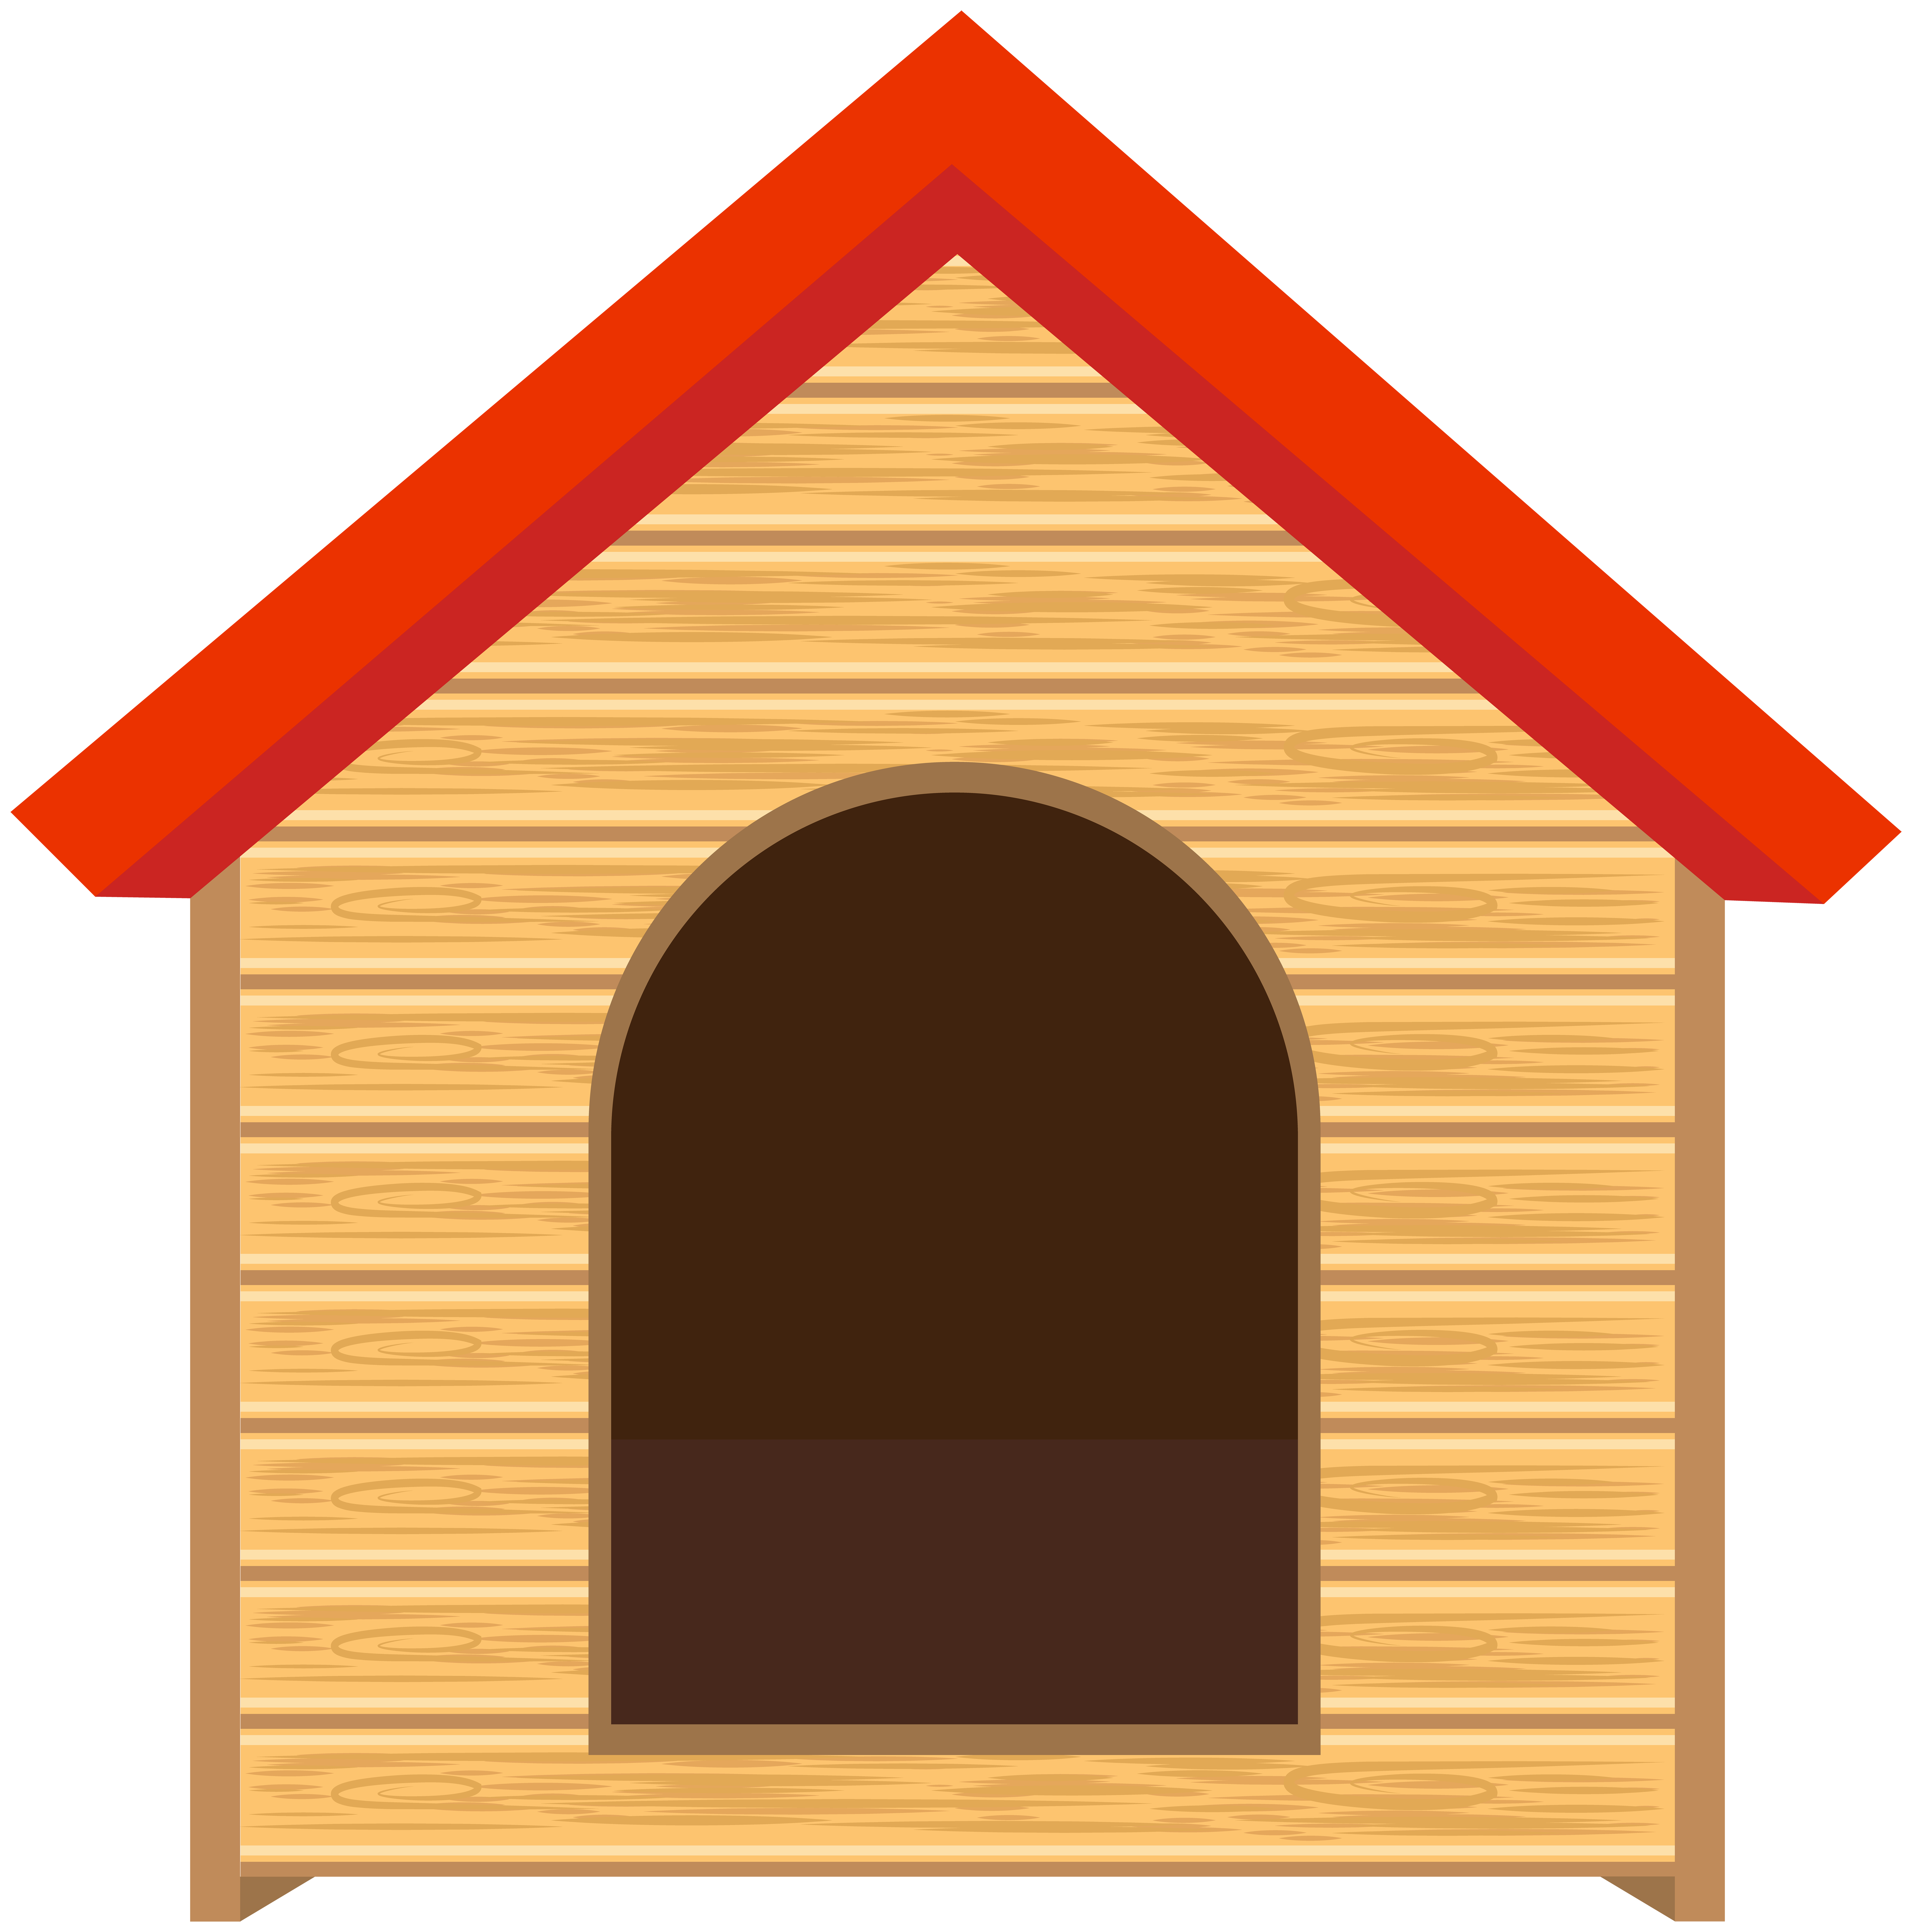 Doghouse clip art image. Dog house png